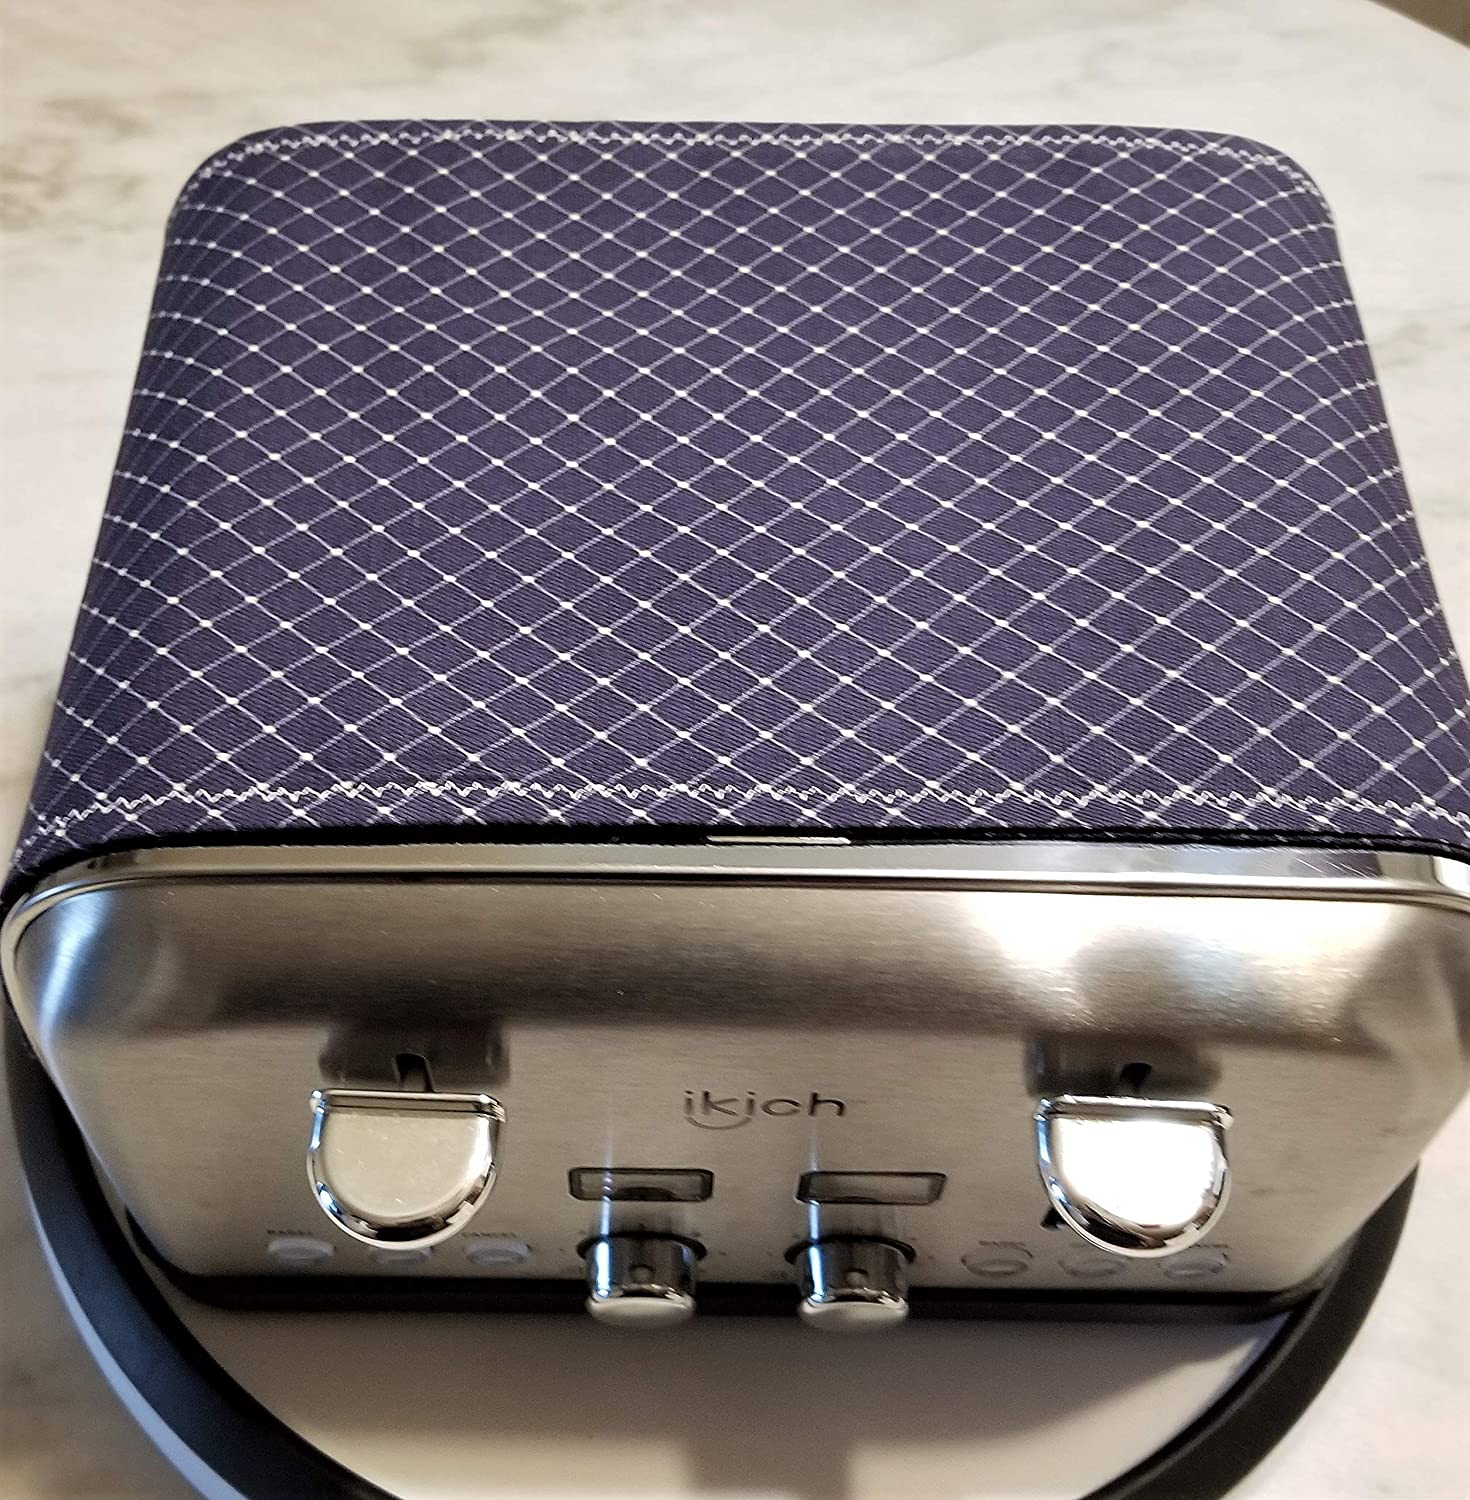 Toaster Huggee/® Toaster Cover will help keep dust /& other airborne particles from floating into your open toaster slots!